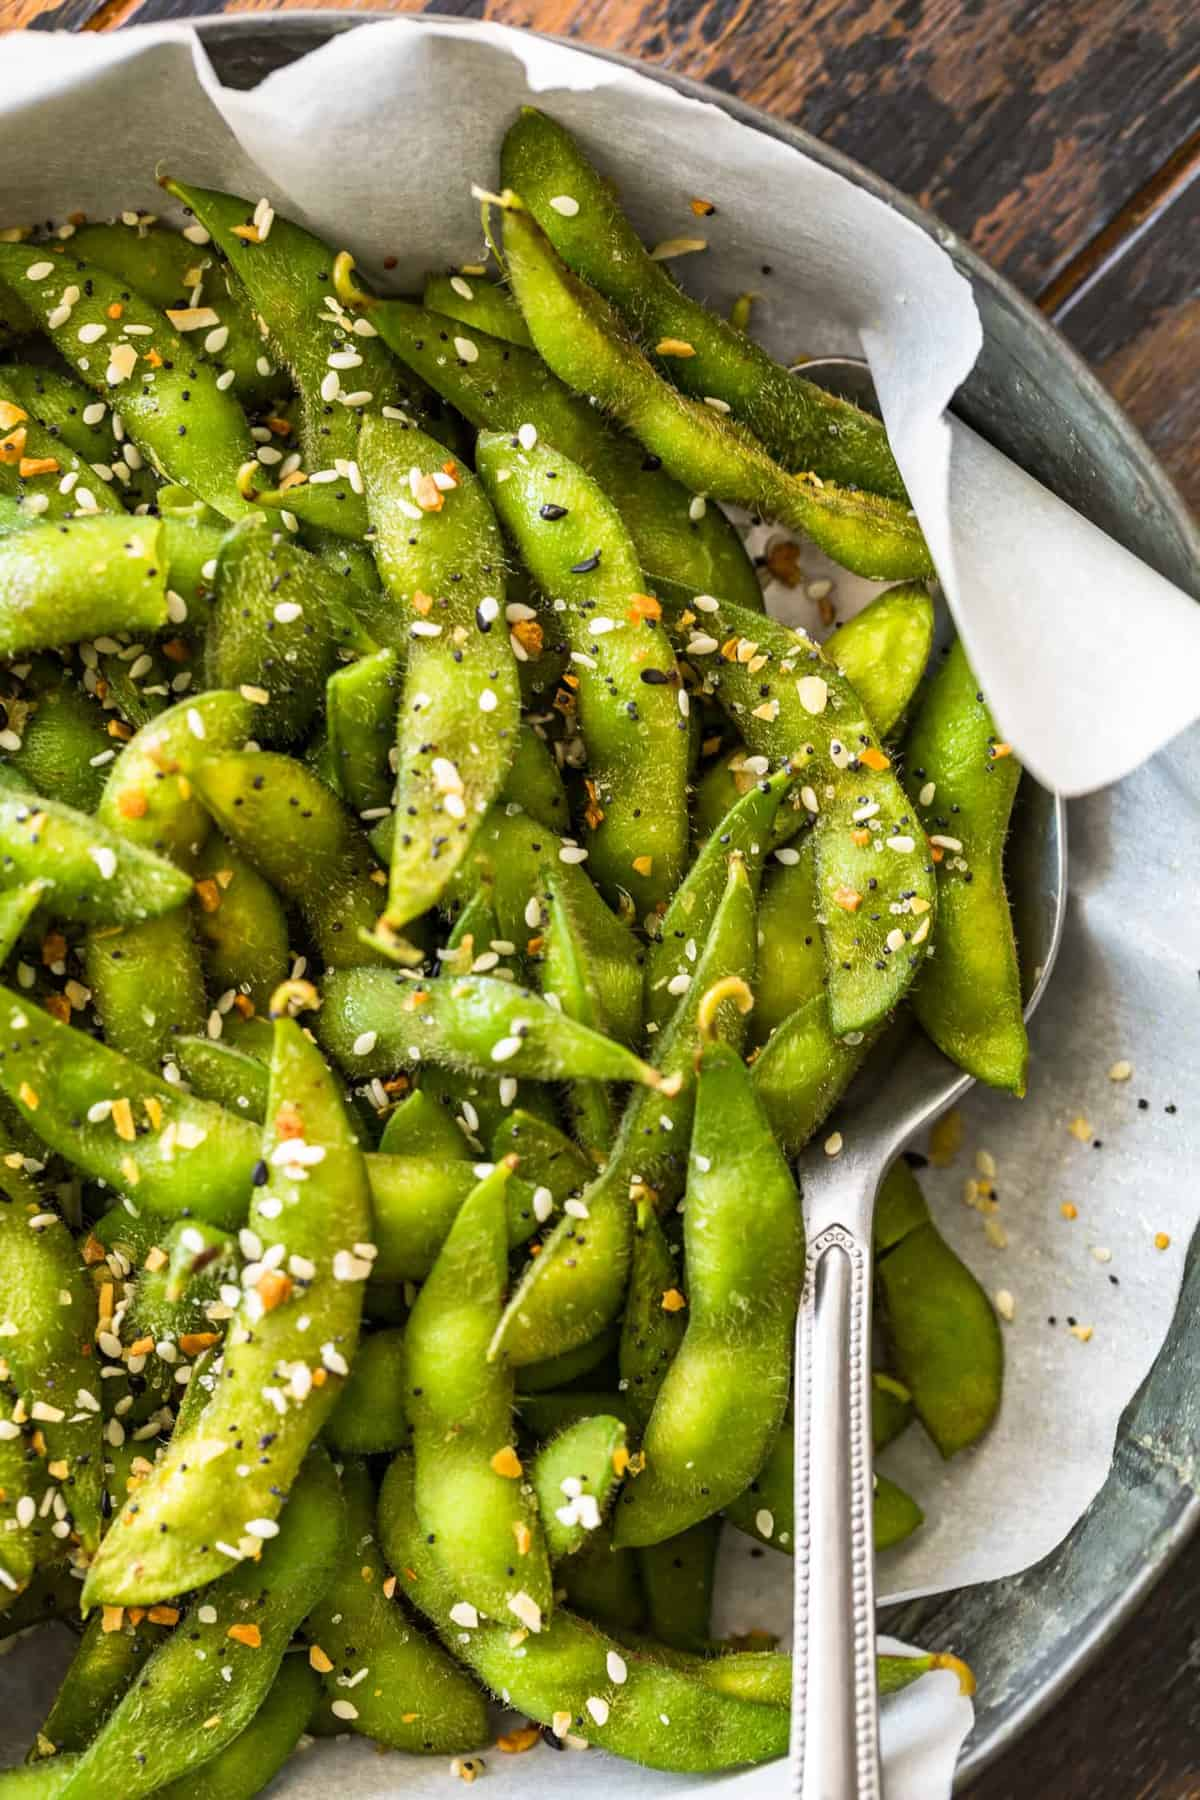 A close up view of edamame seasoned with everything bagel seasoning